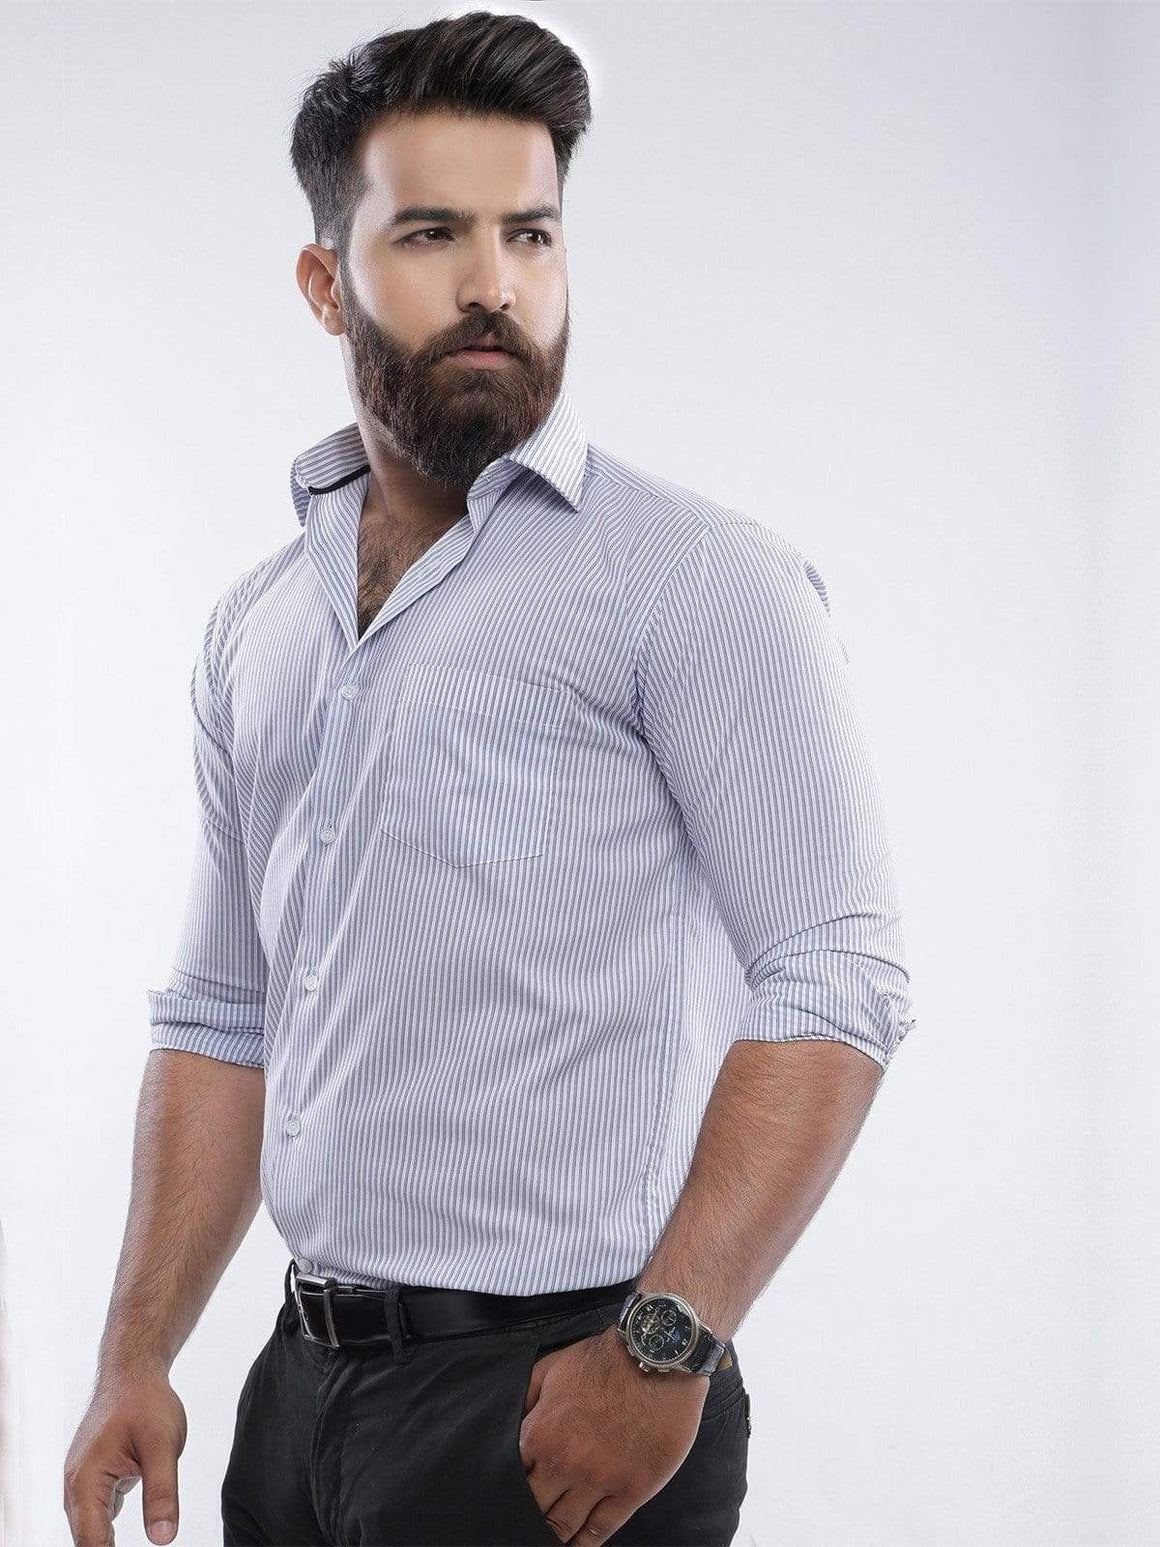 The Cress - Grey And White Striped Dress Shirt